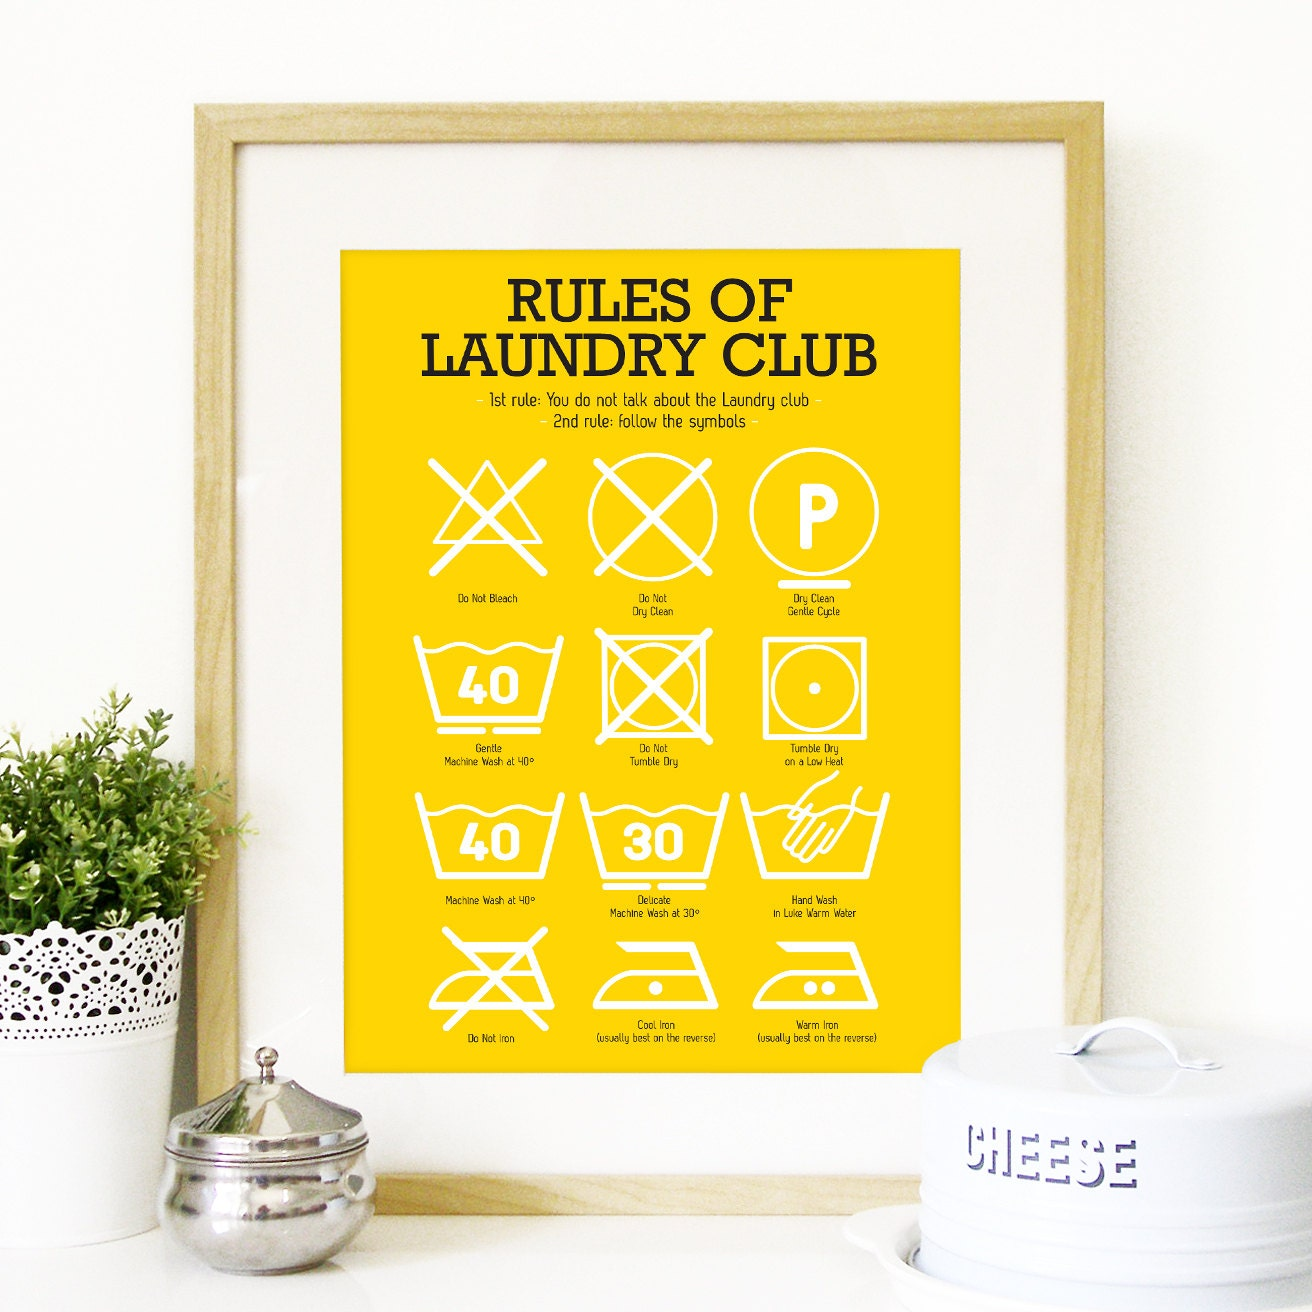 Kitchen Laundry Club Poster Art with laundry symbols explained